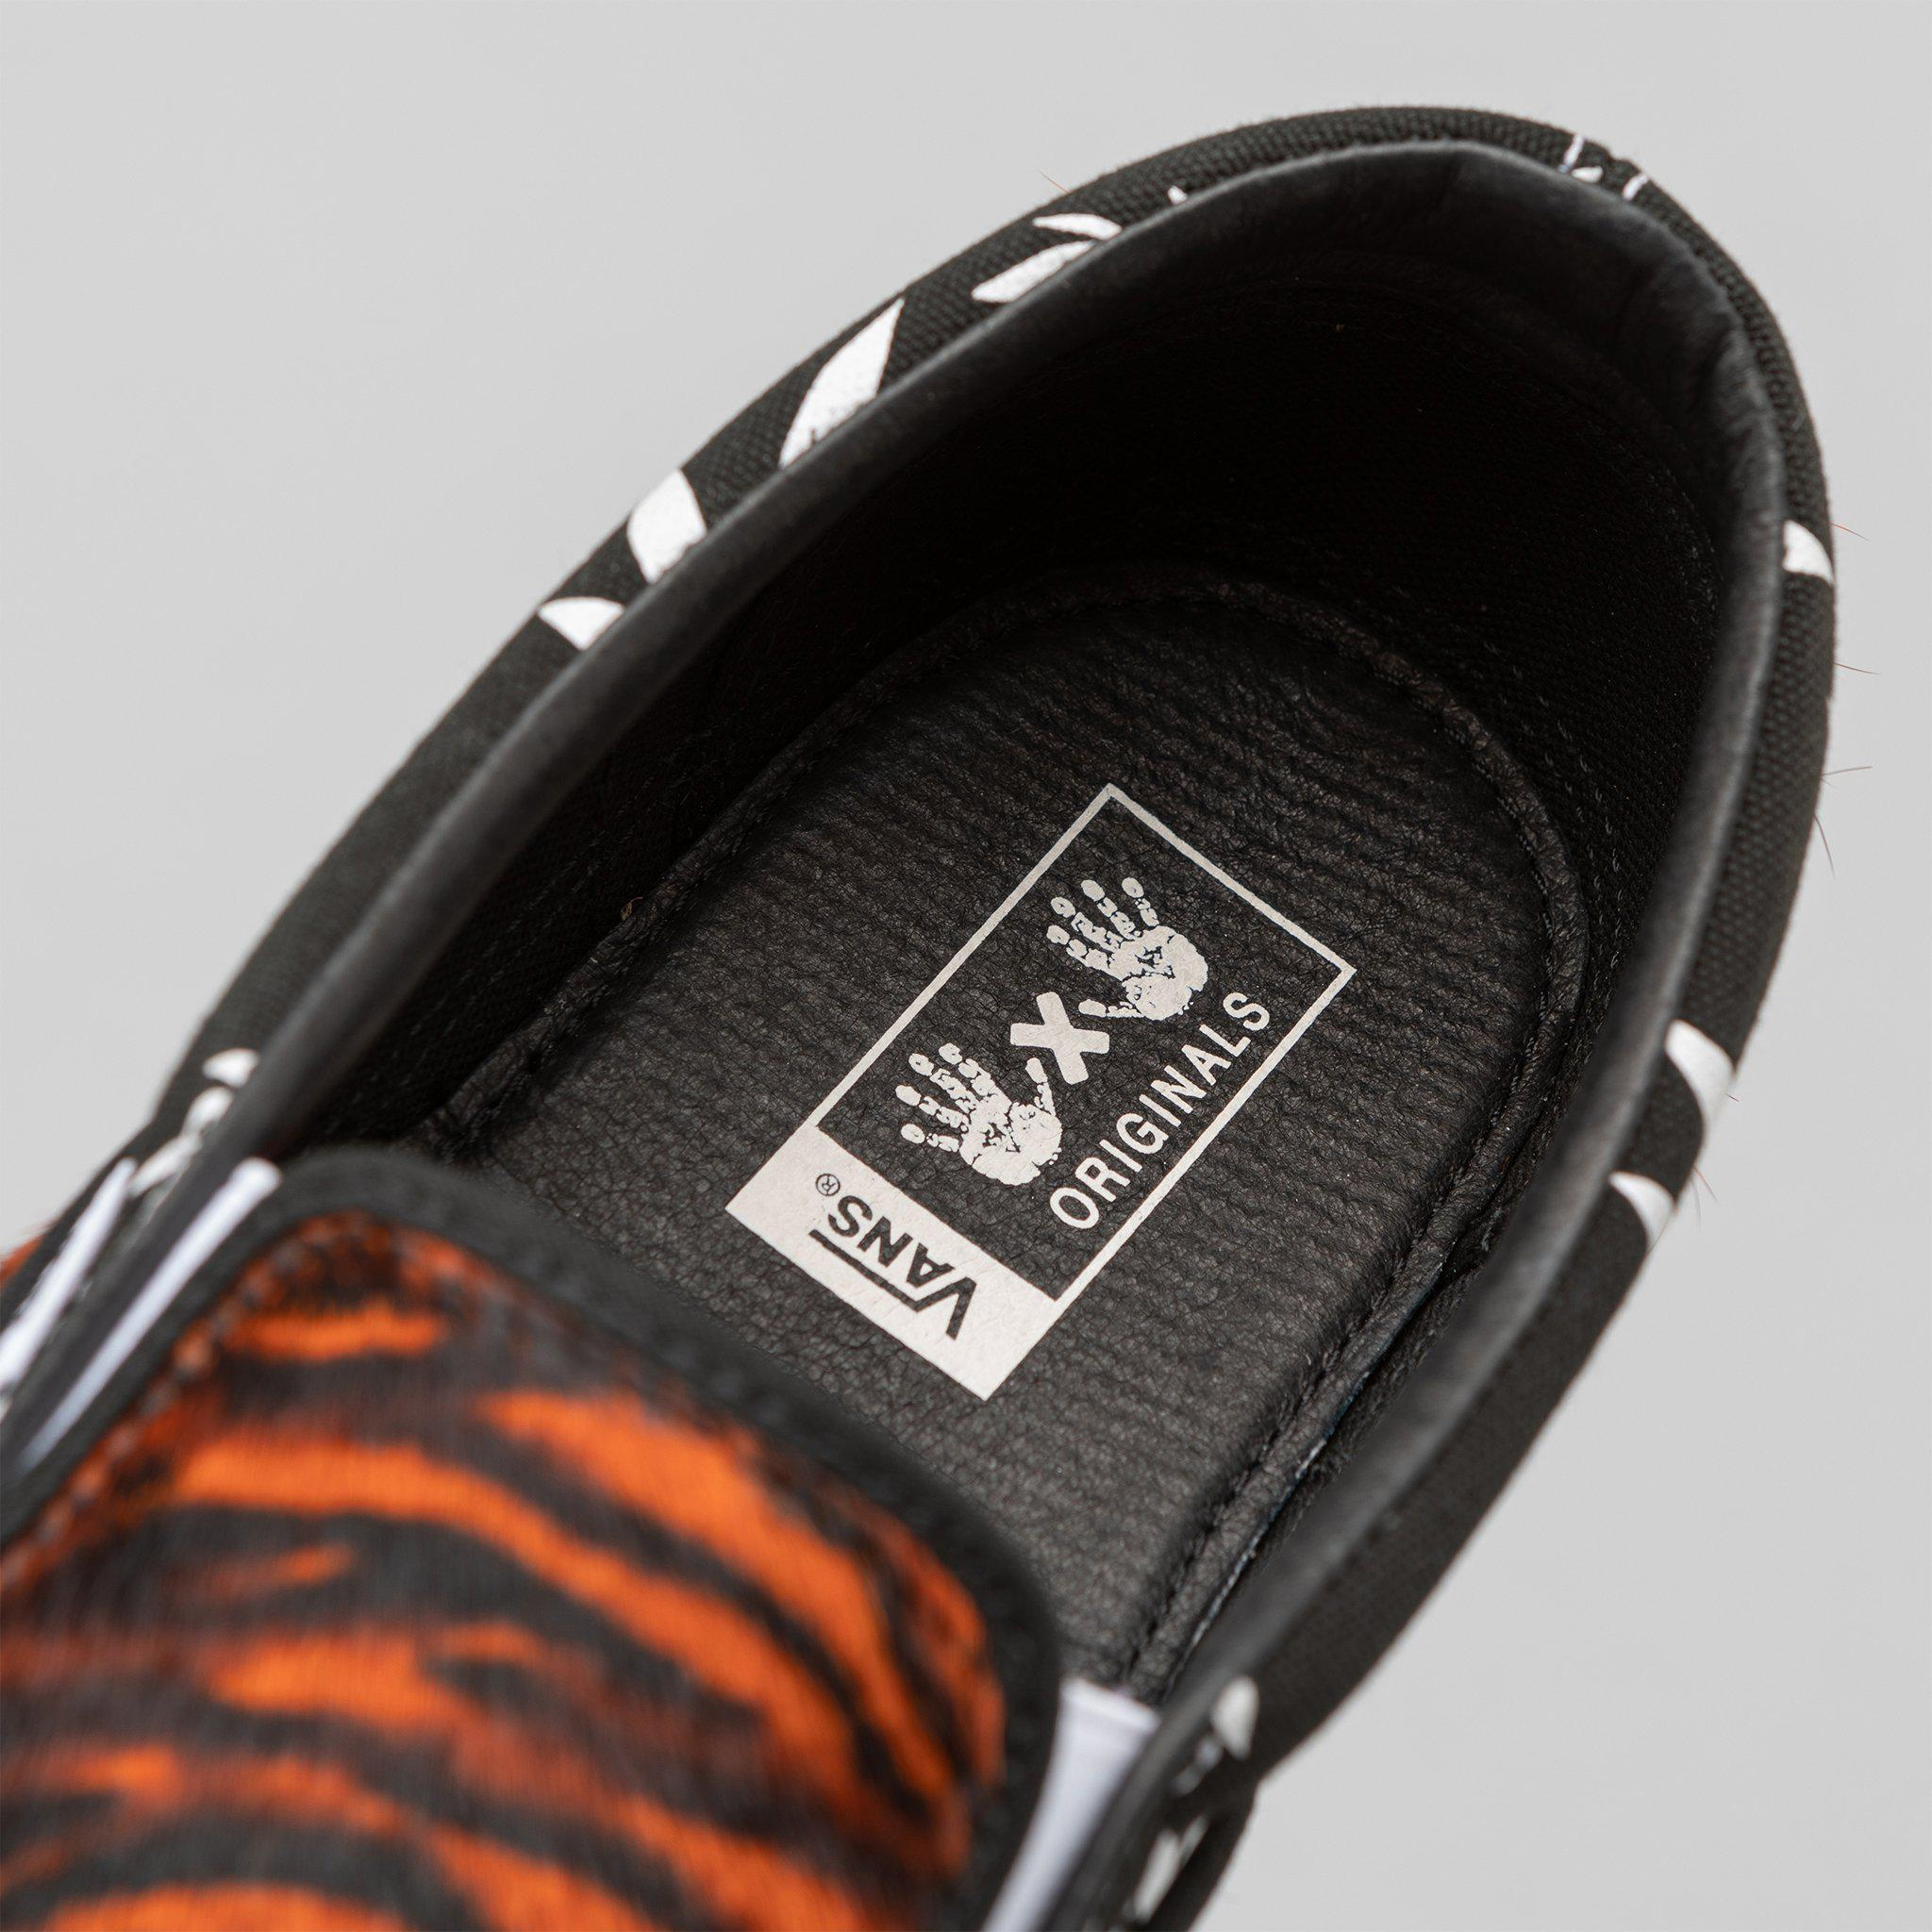 536f20a20b Lyst - Vans X Vier 5x5 Classic Slip-on In Tiger palm for Men